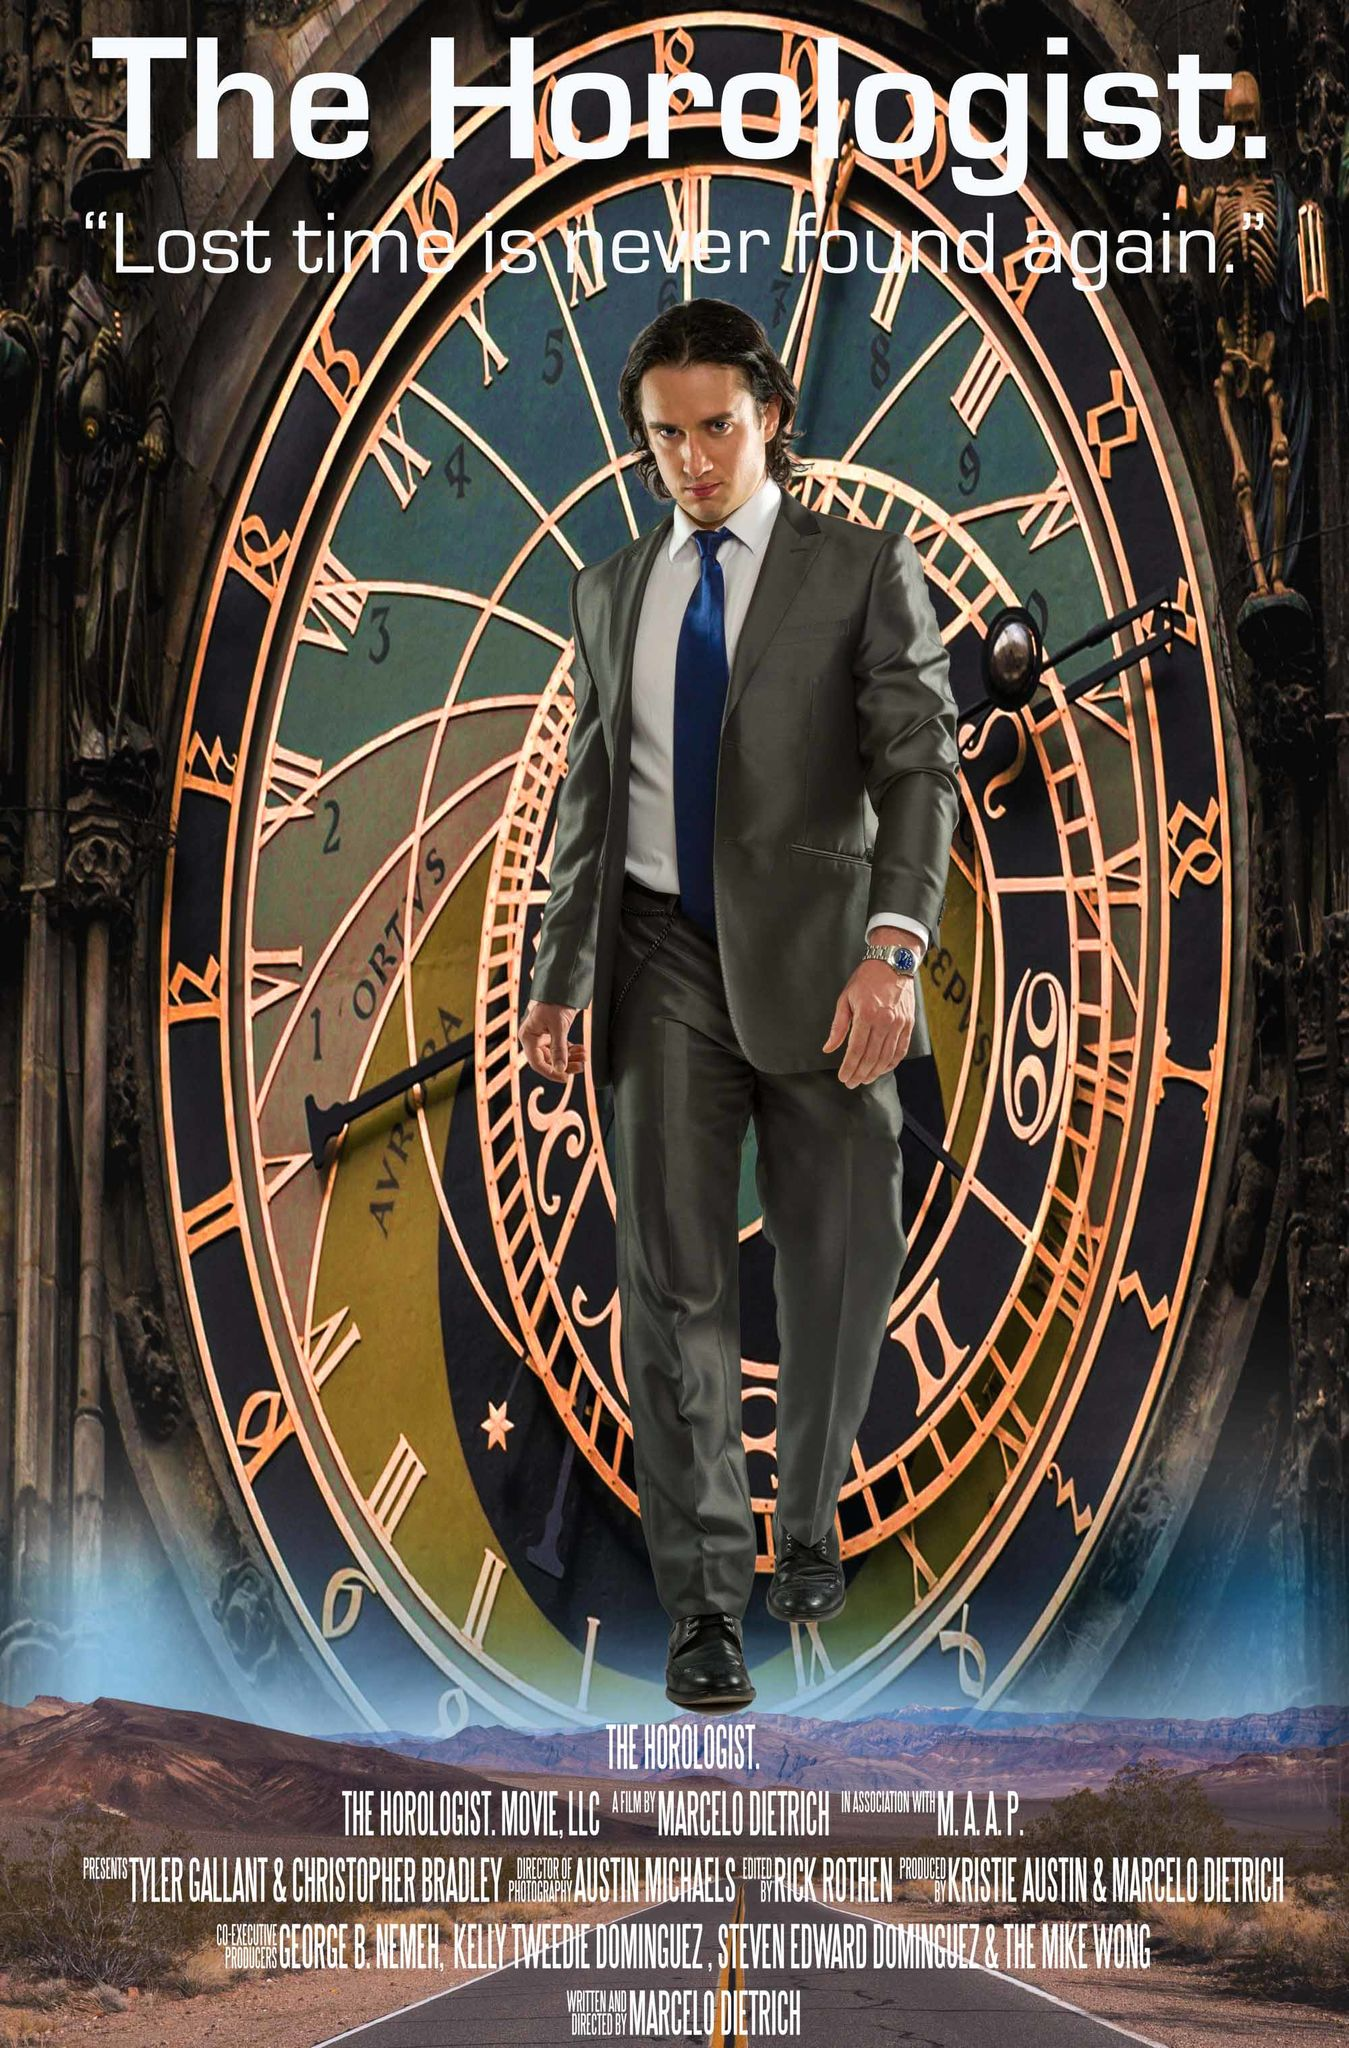 The Horologist.